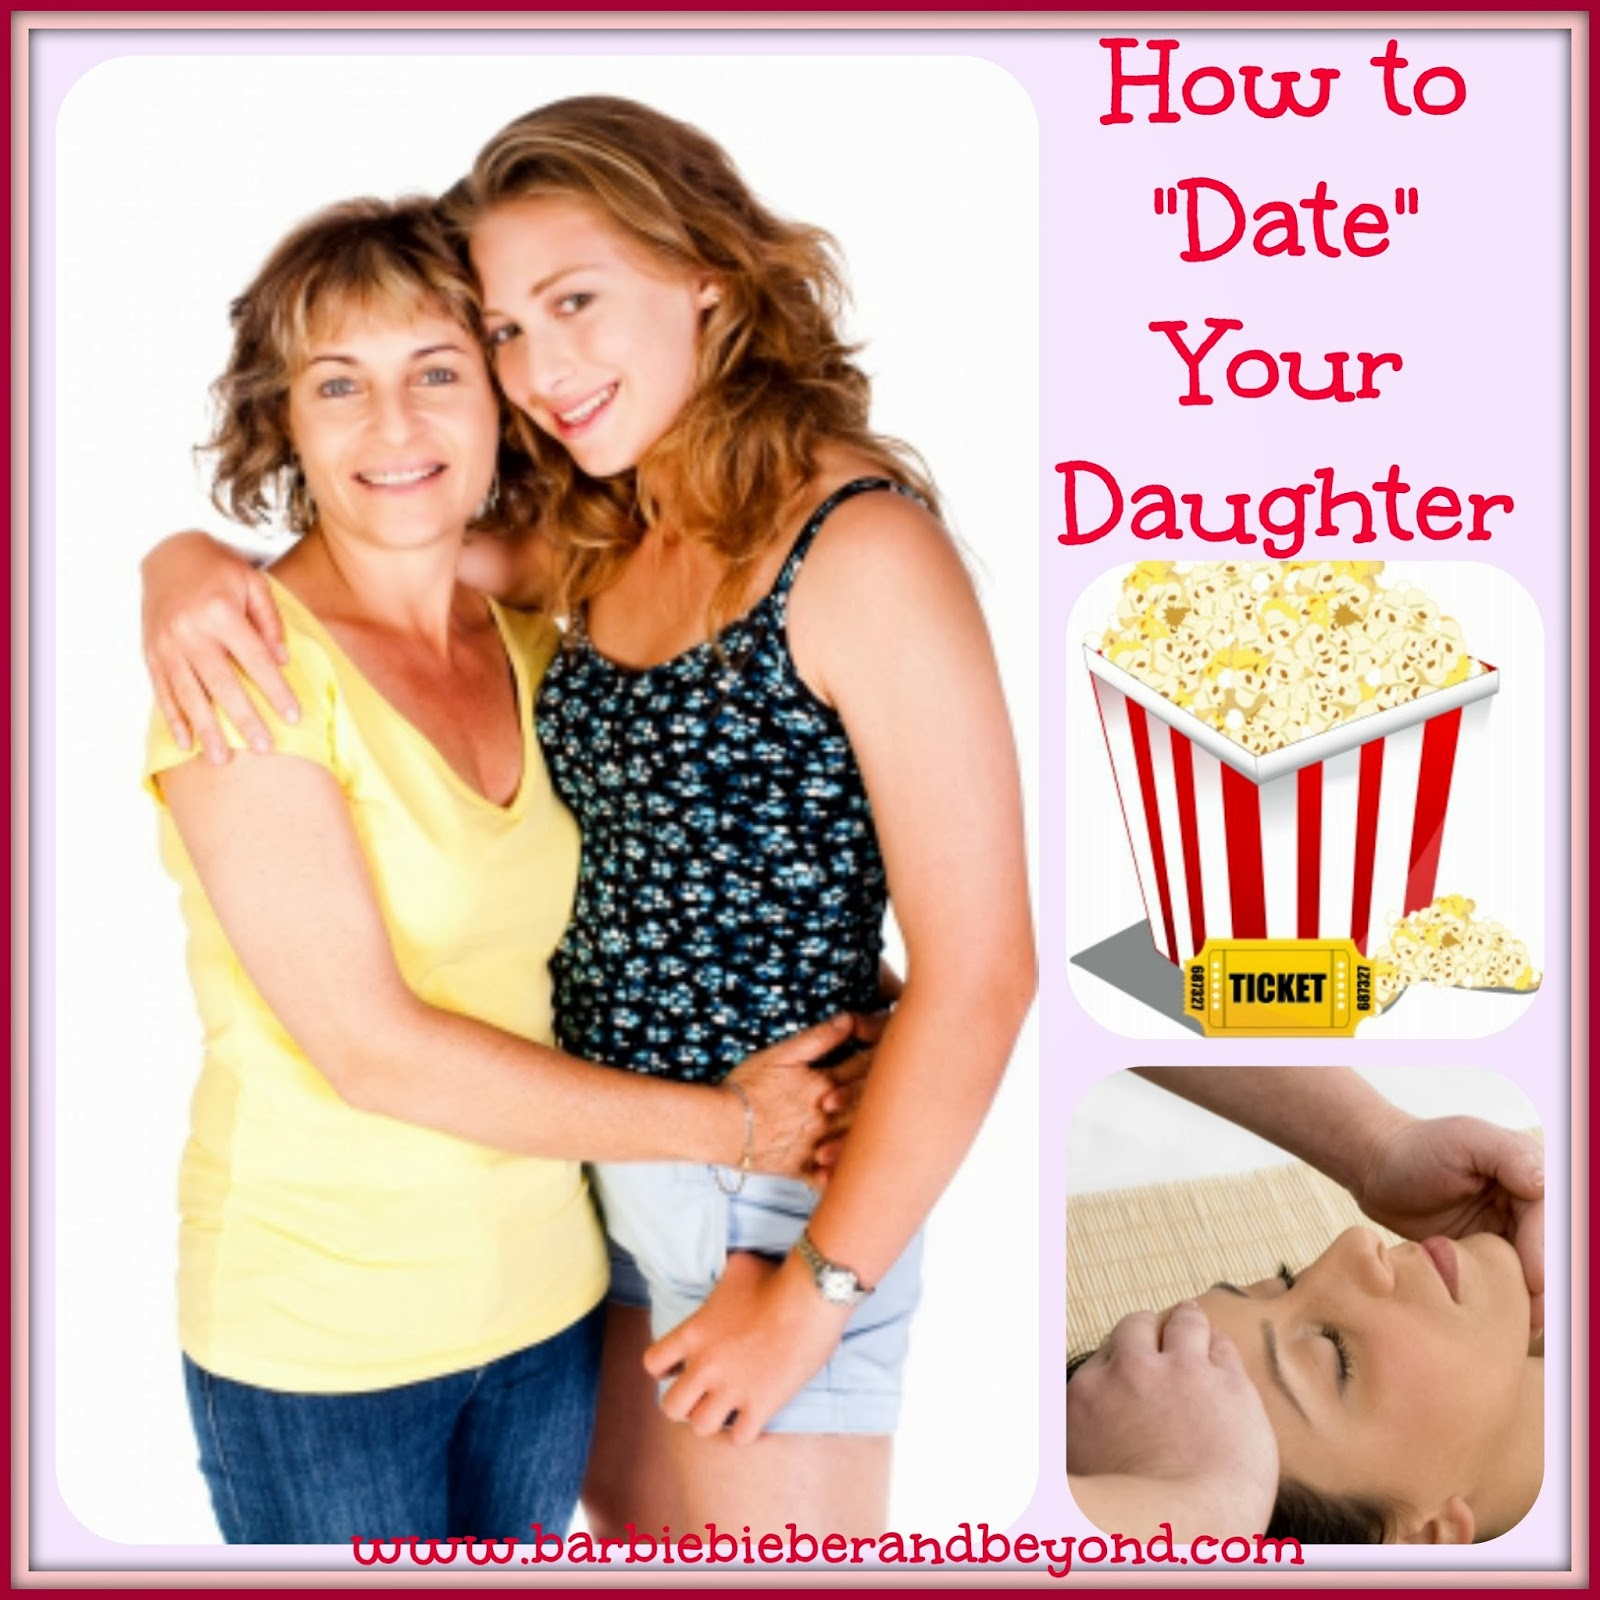 dating your daughter When should kids date by dr ray guarendi as a family psychologist let's suppose that you've decided to begin dating discussions when your daughter turns 16.